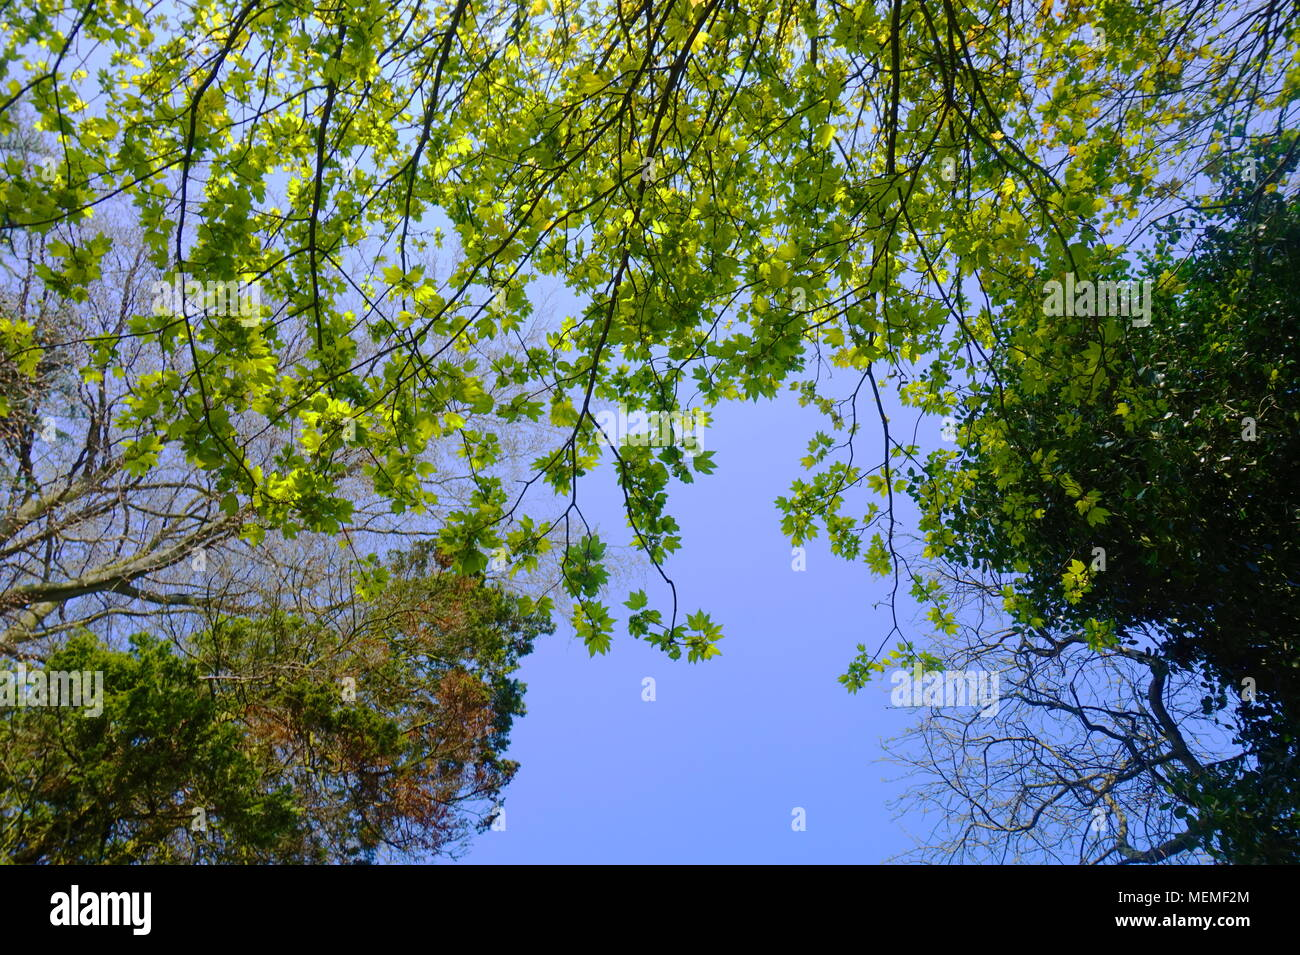 A worm's eye of view. Simple background with different colour greens set against a backdrop of a blue sky. - Stock Image